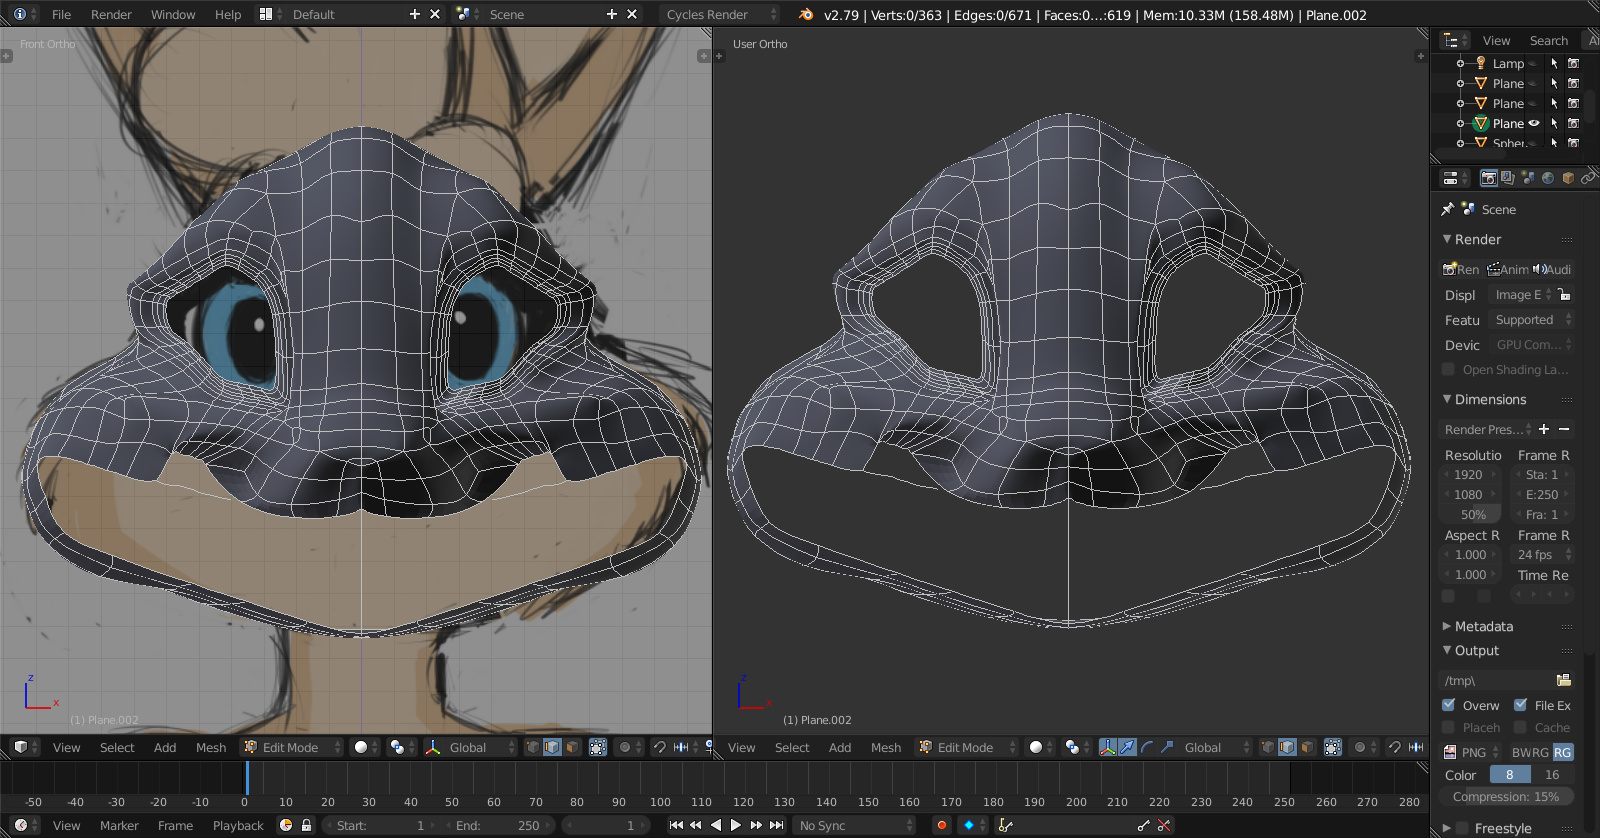 Help with modeling an anthropomorphic animal? - Modeling